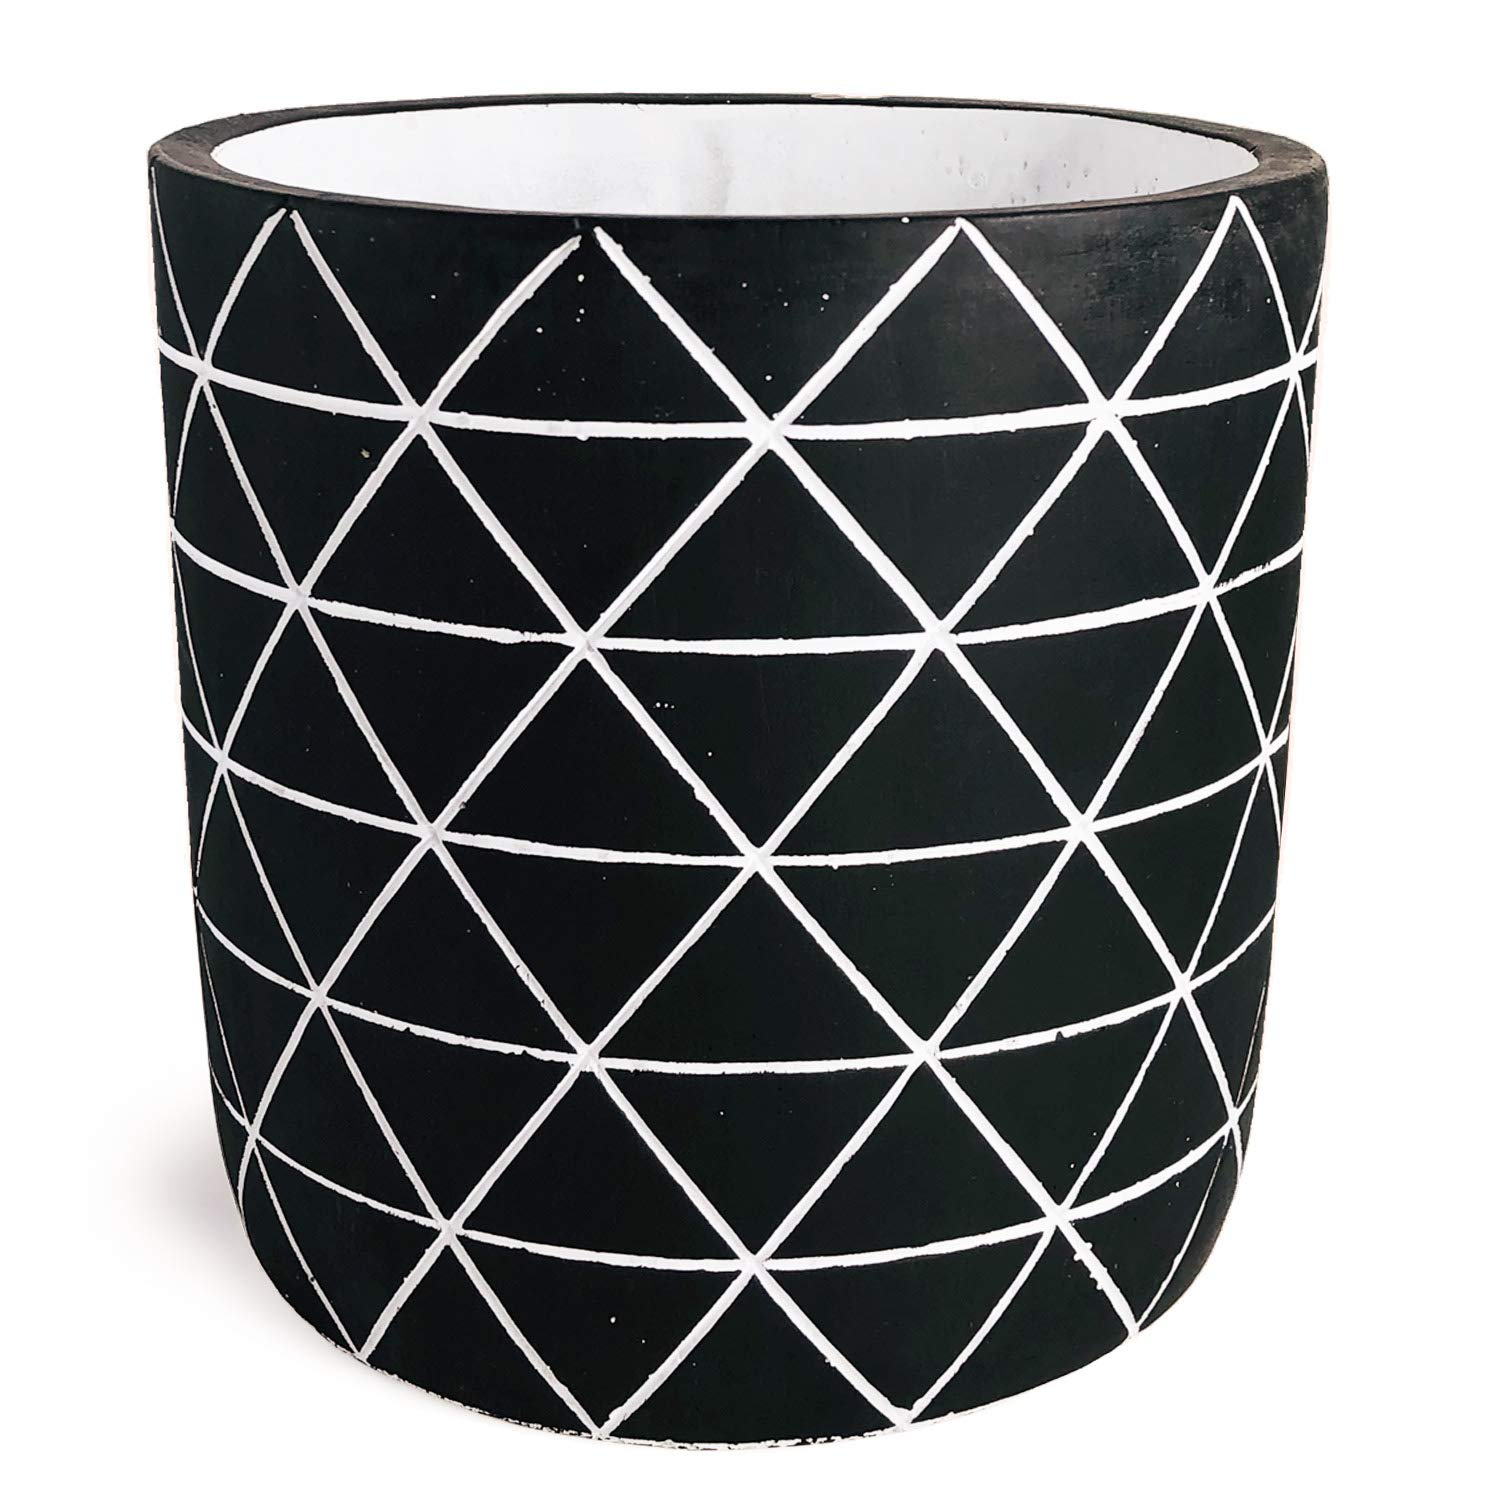 Flower Pot, Outdoor Indoor Concrete Planter 6 Inch, Cement Succulent Planter with Drainage Hole, Mid-Century Orchids Container Large Modern Planter Home Window Decor Black and White by Forward